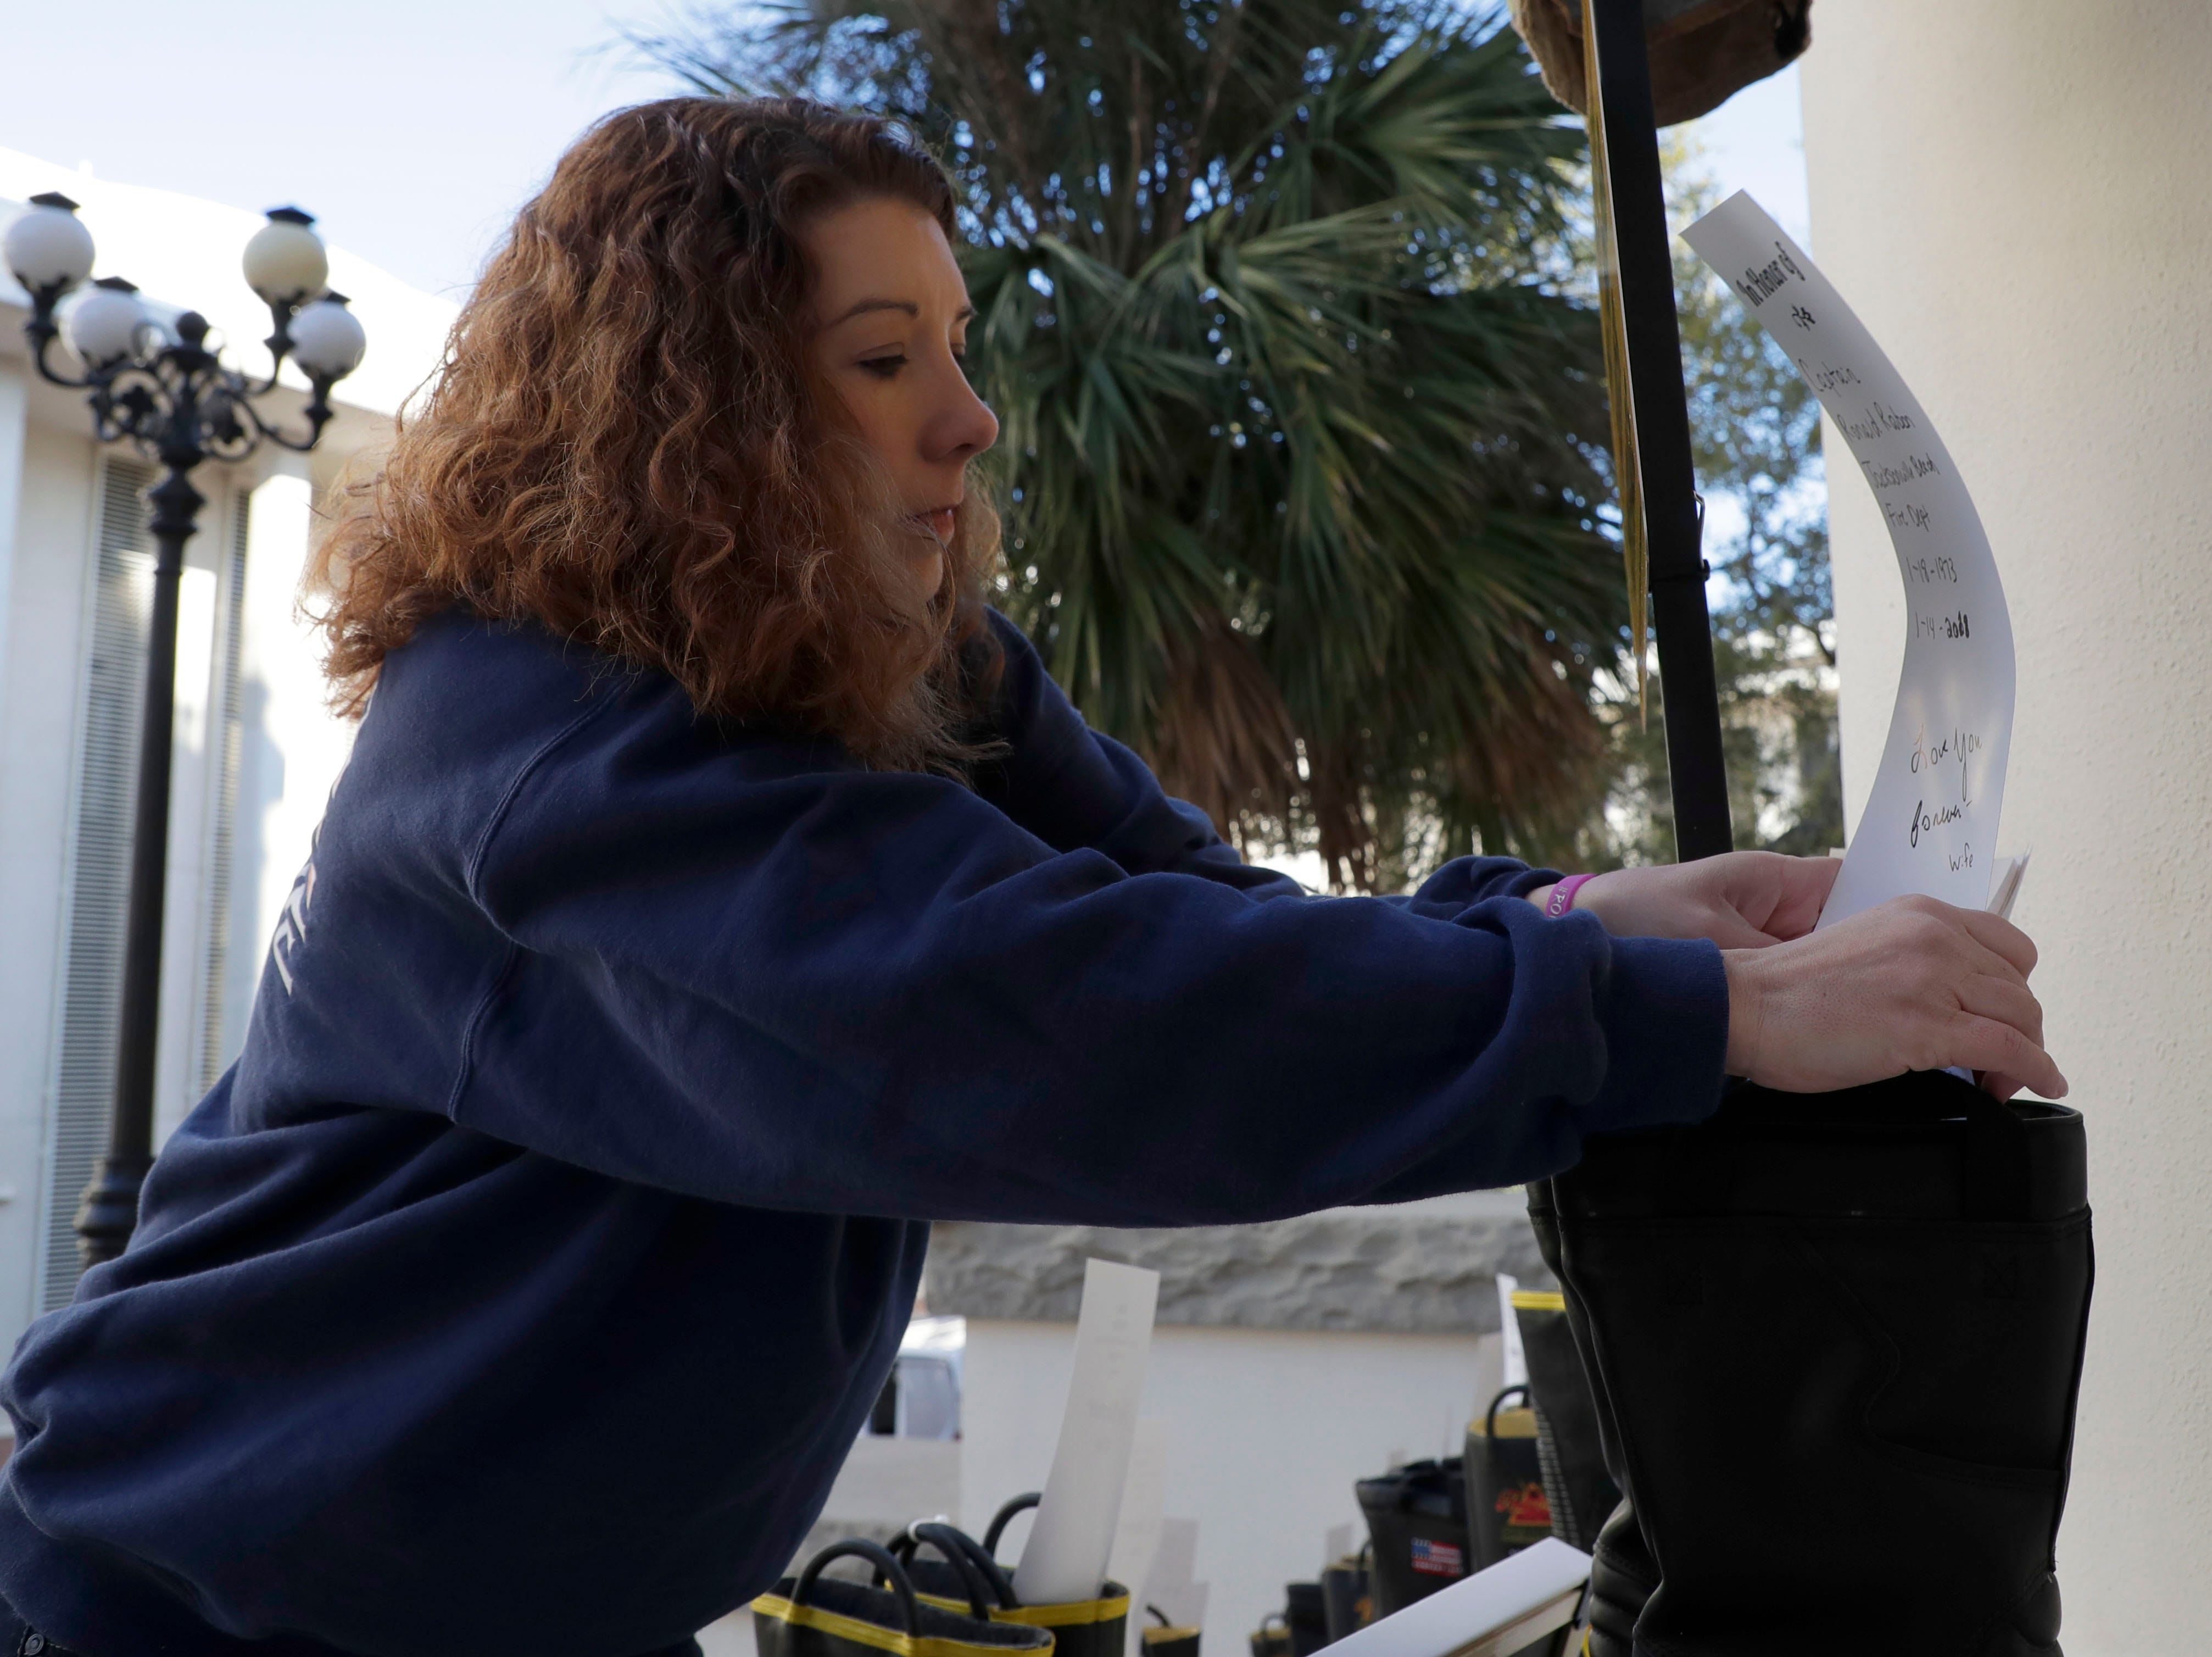 Ashley Rabon, a mother of three who lost her husband, Captain Ronald Rabon with the Jacksonville Beach Fire Department who lost his battle with appendix cancer, places a card honoring him in a pair of boots. Firefighters and their families from around the state create a display at the Capitol of 500 pairs of boots in honor of firefighters who lost their battle or are battling with cancer caused from smoke inhalation and carcinogens Thursday, March 7, 2019. The state of Florida is one of five states in the country that does not have a bill acknowledging cancer is a job-related illness.